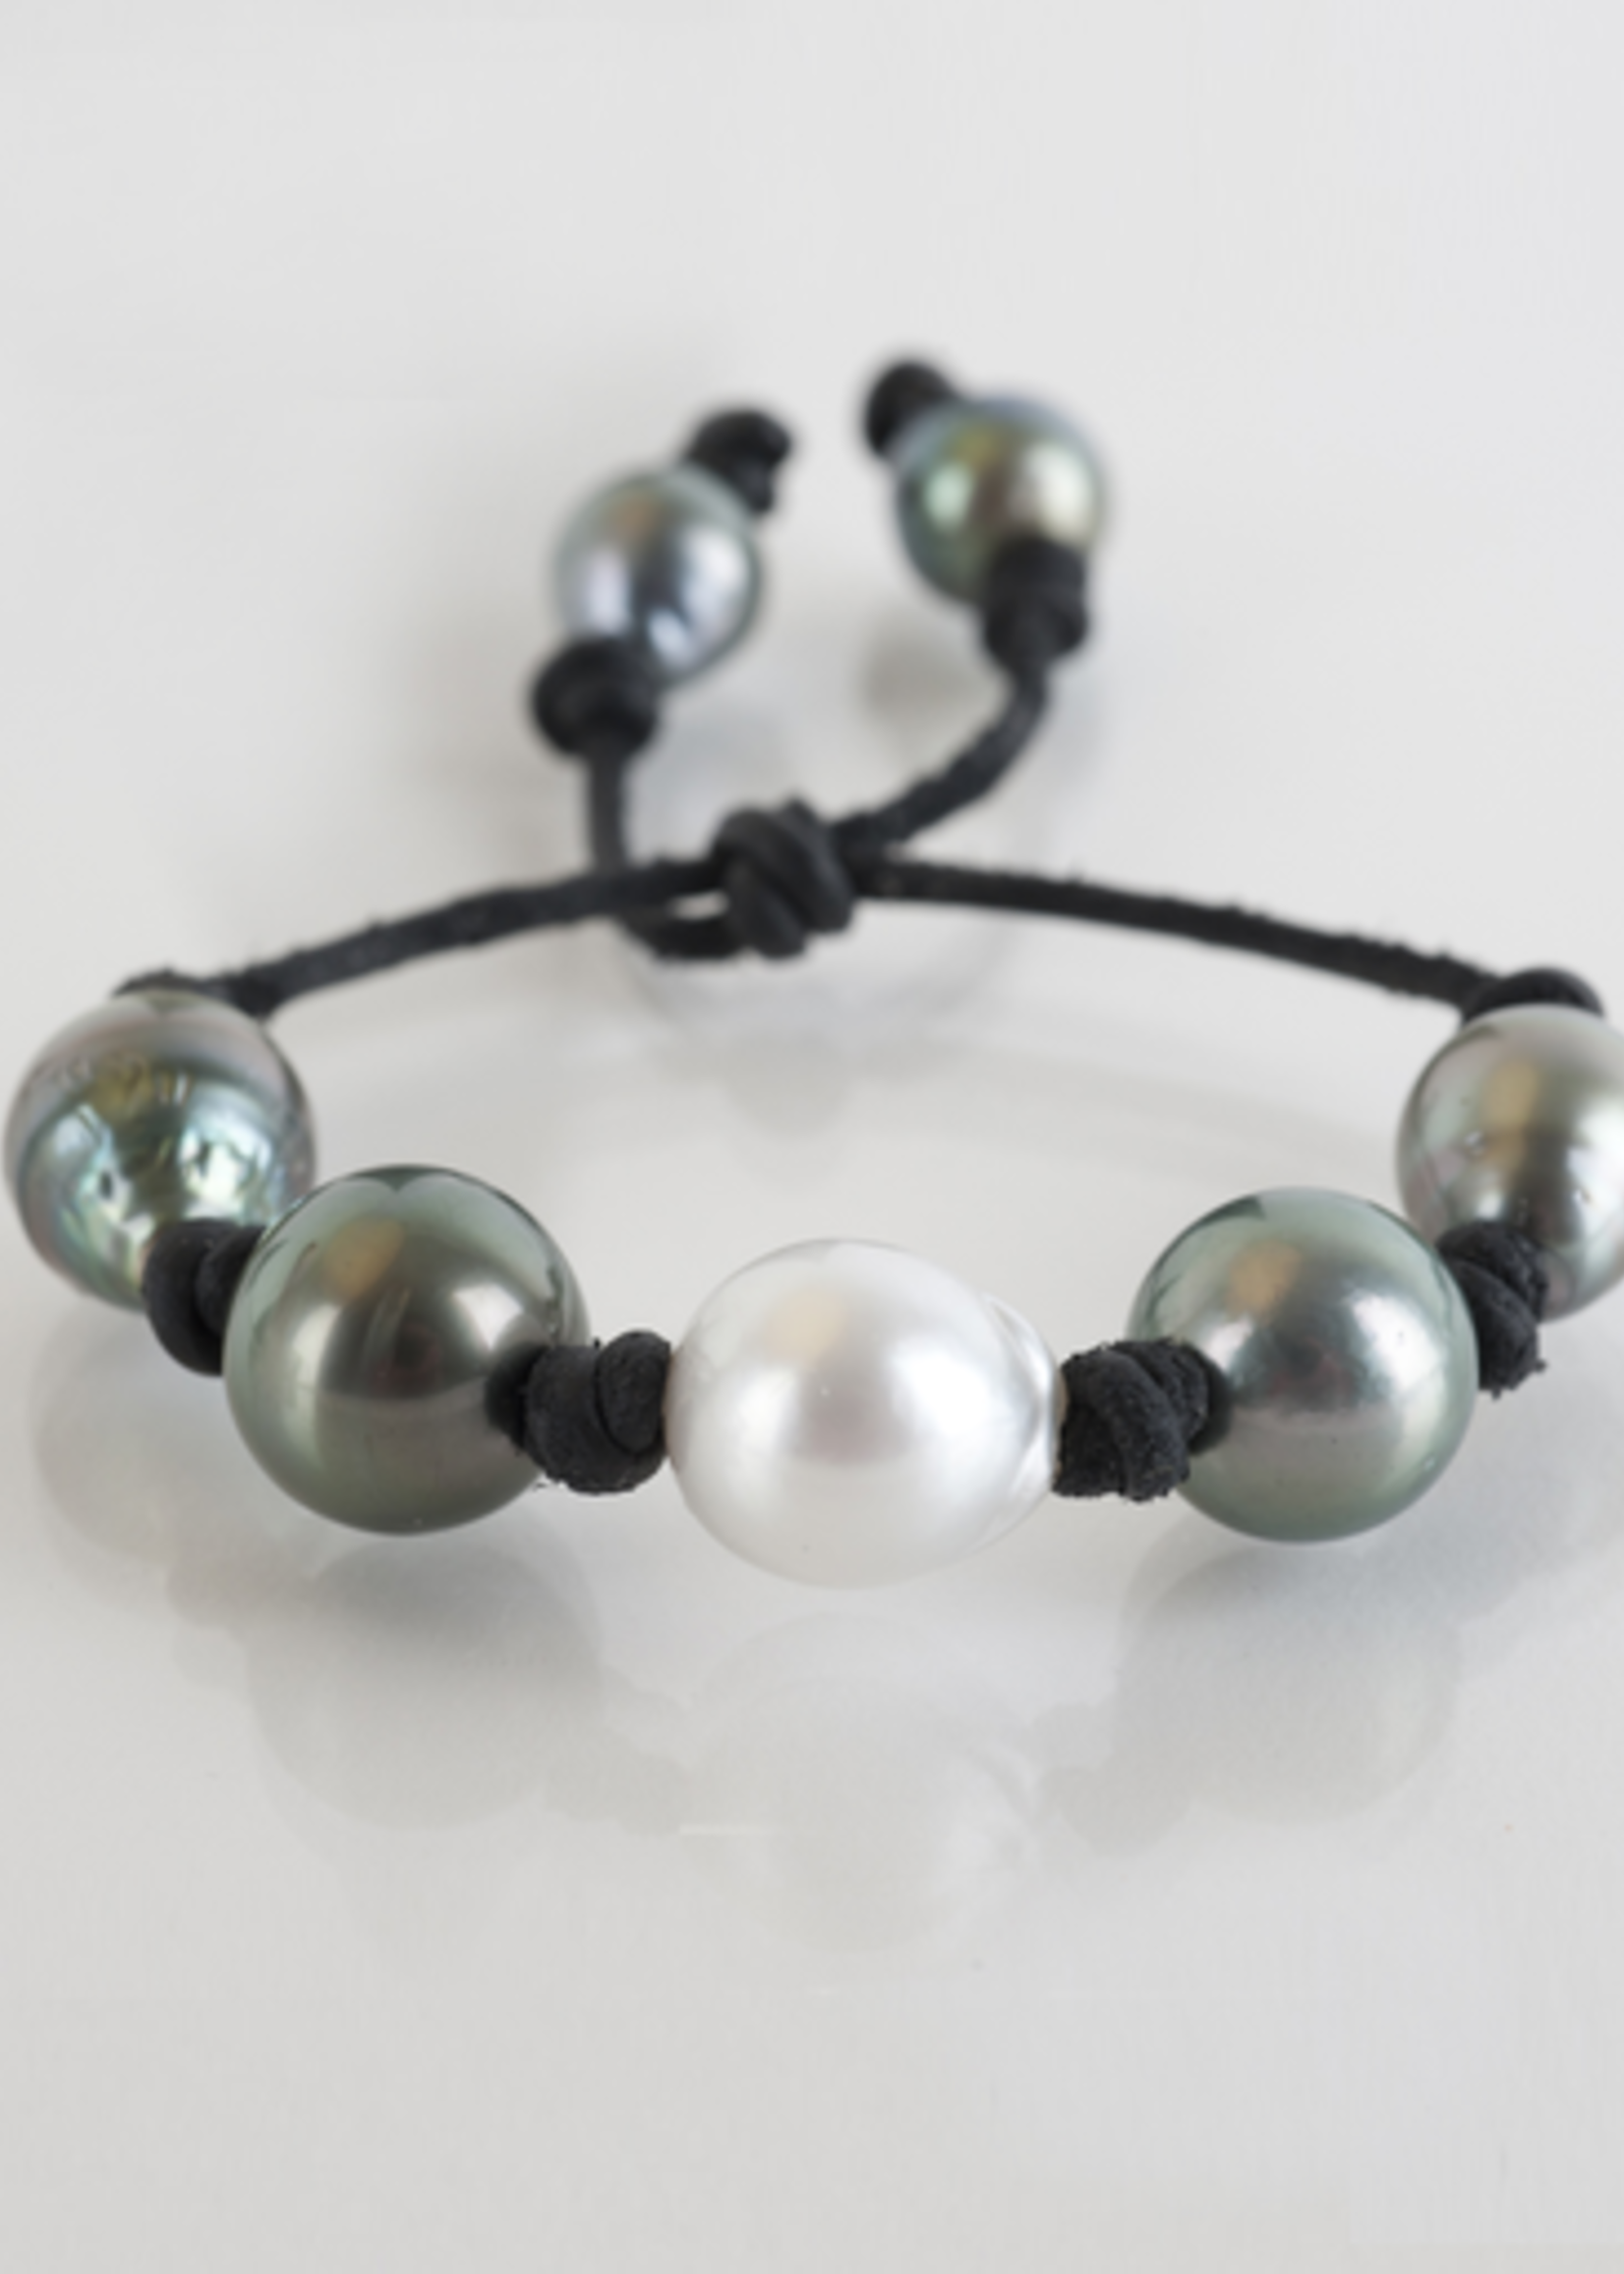 Mina Danielle South Sea and Tahitian Pearls on Black Leather Cord with adjustable sliding closure